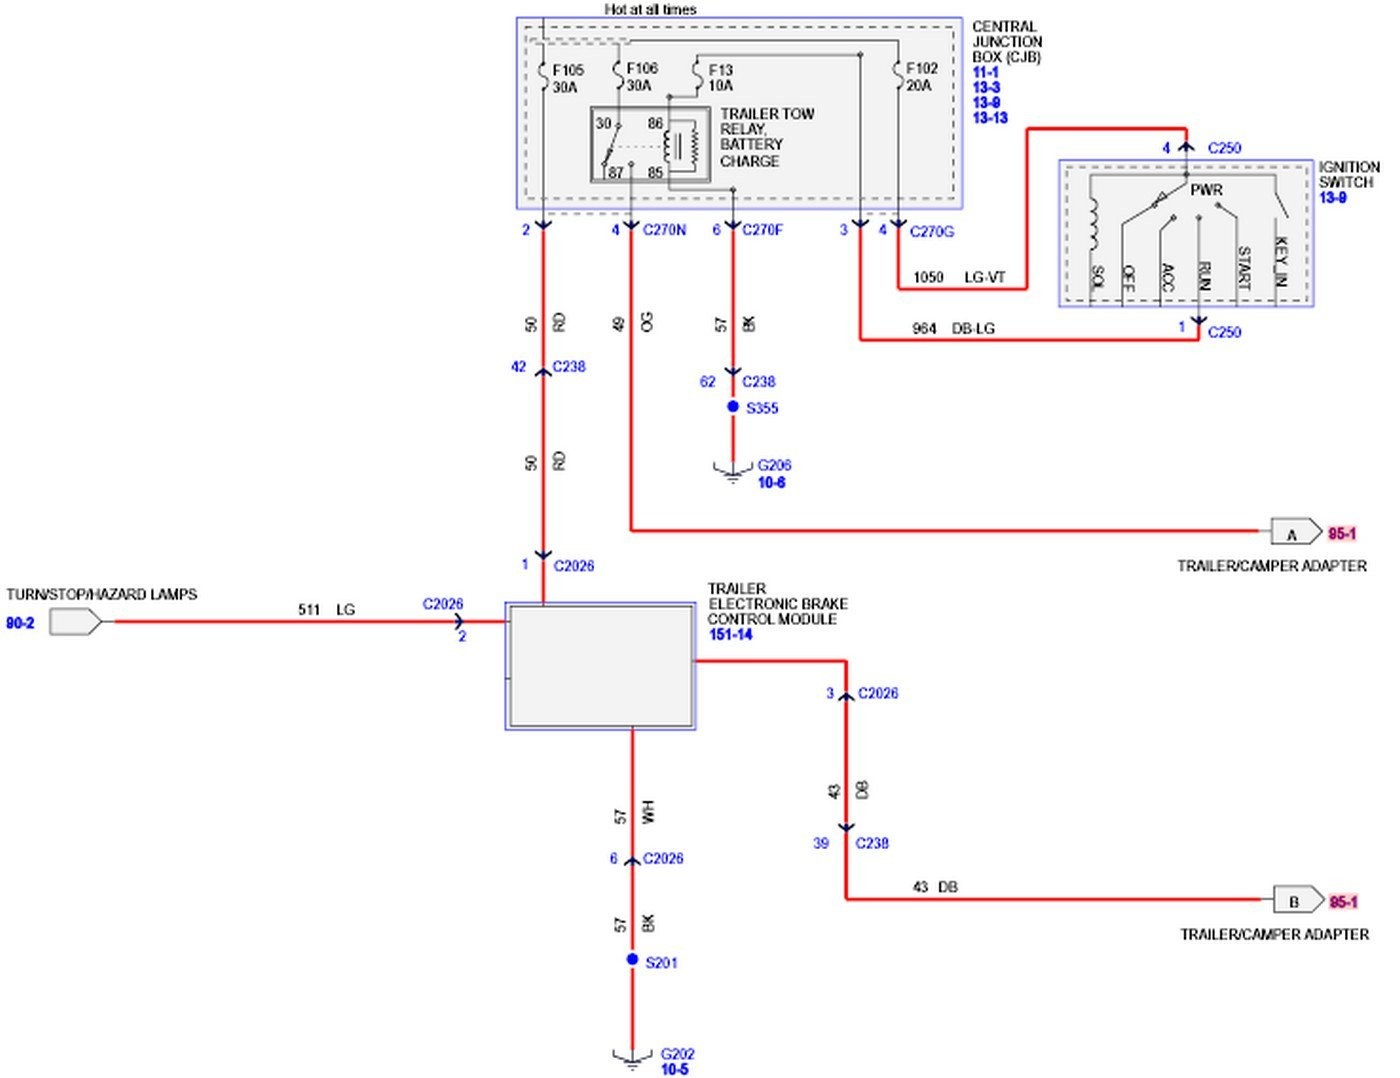 Keystone-rv-cable-tv-wiring-diagram - Best Wallpapers Cloud on rv electric wiring diagram, rv antenna wiring diagram, rv power supply wiring diagram, rv satellite wiring diagram, rv solar system wiring diagram, security camera cable wire diagram, rv trailer wiring diagram, rv tv antenna booster, rv microwave wiring diagram, rv battery wiring diagram, rv television wiring diagram, rv ac wiring diagram, rv hot water wiring diagram, rv air conditioning wiring diagram, rv refrigerator wiring diagram,